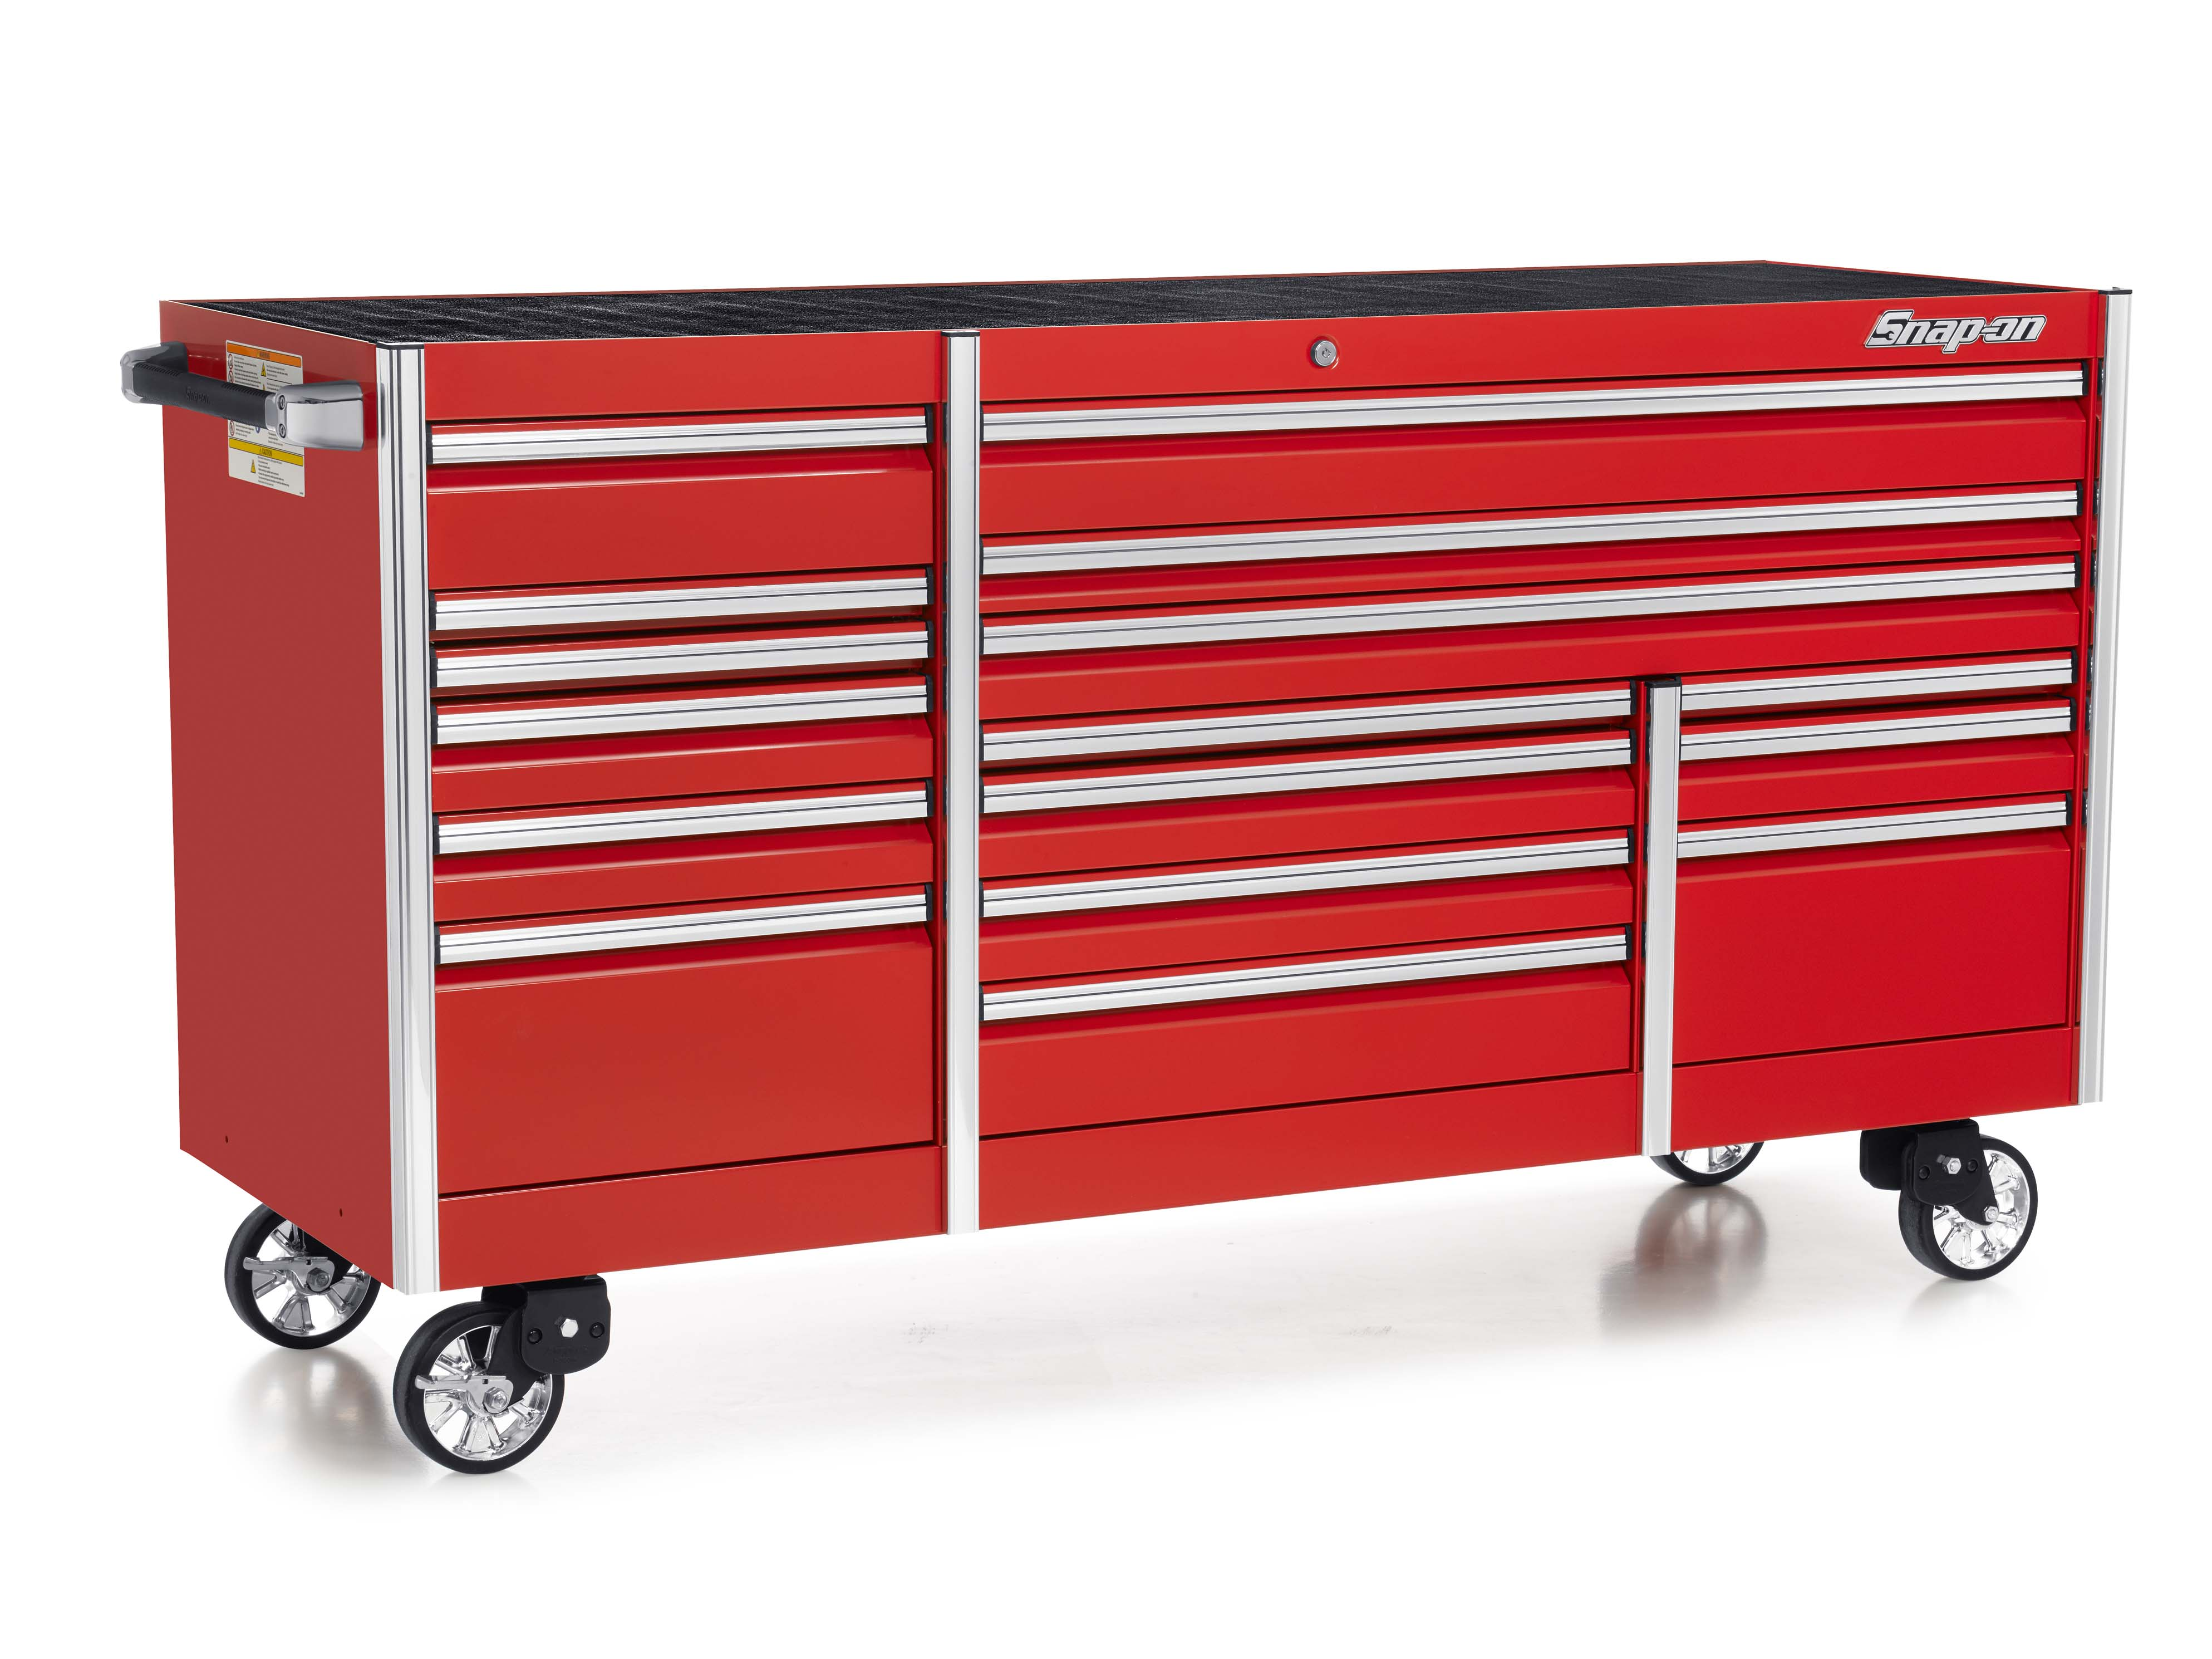 Wondrous Snap On Introduces New 16 Drawer Roll Cab June 02 2016 Uwap Interior Chair Design Uwaporg